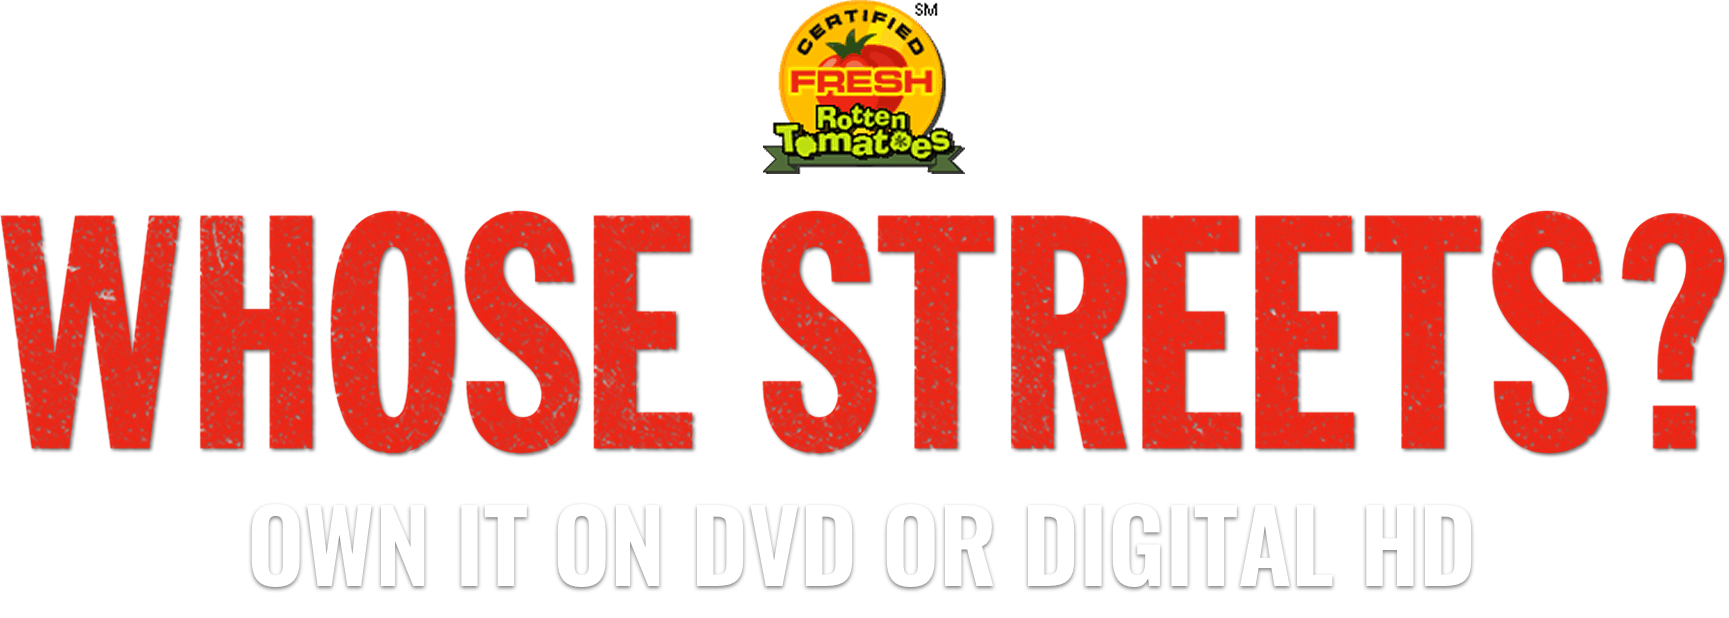 Whose Streets?: Story   Magnolia Pictures